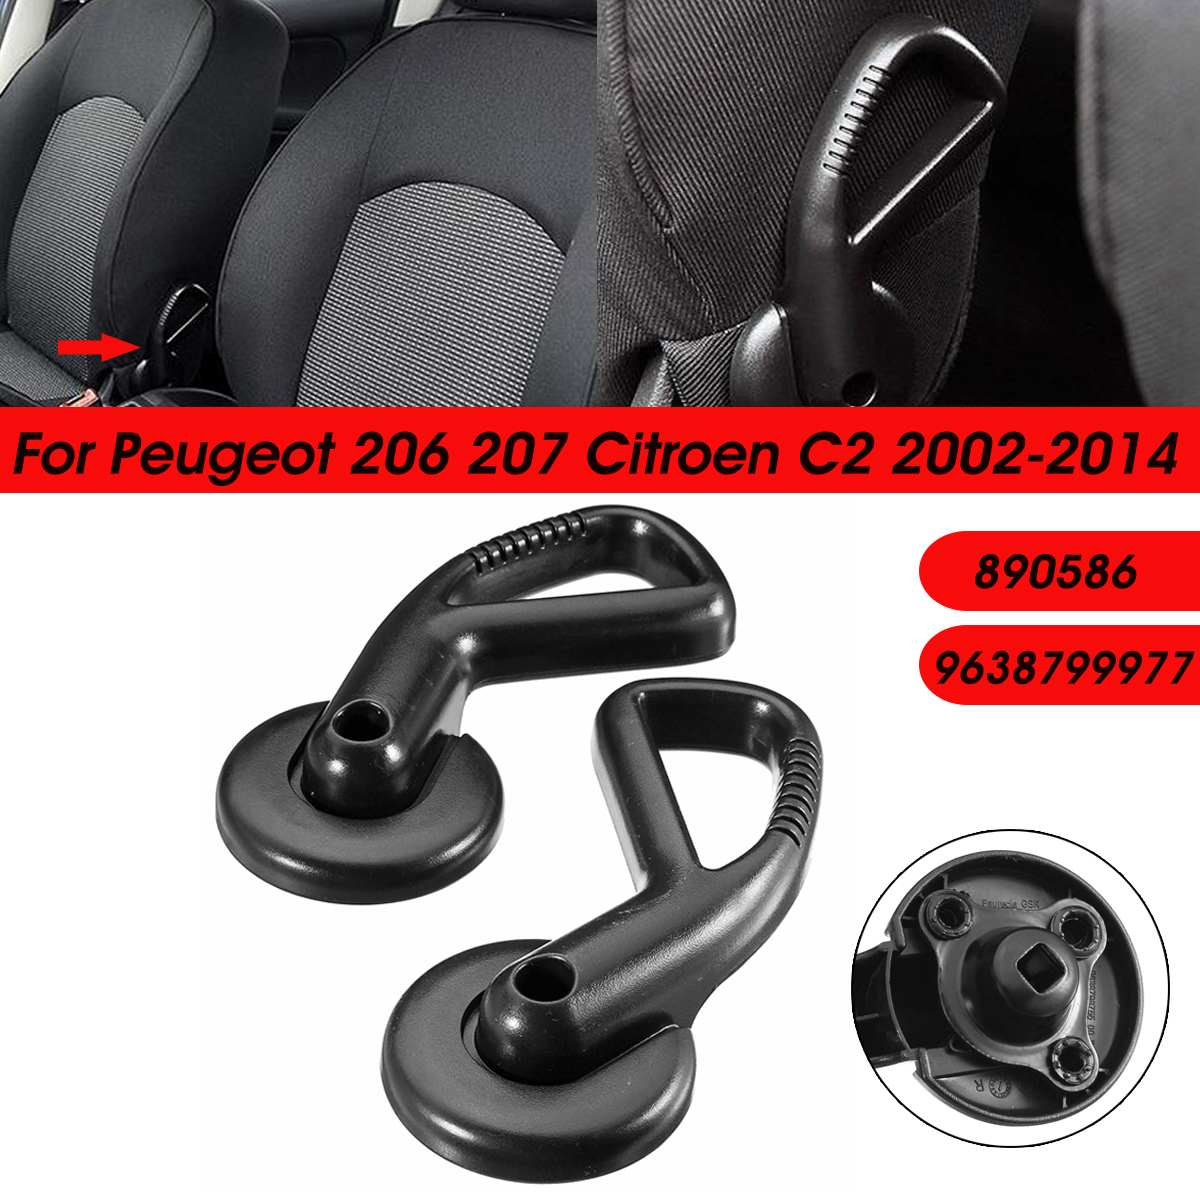 Car Left Right Armrest Handle Seat Adjuster Knob Adjust Lever 9638799977 890586 For Peugeot 206 207 For Citroen C2